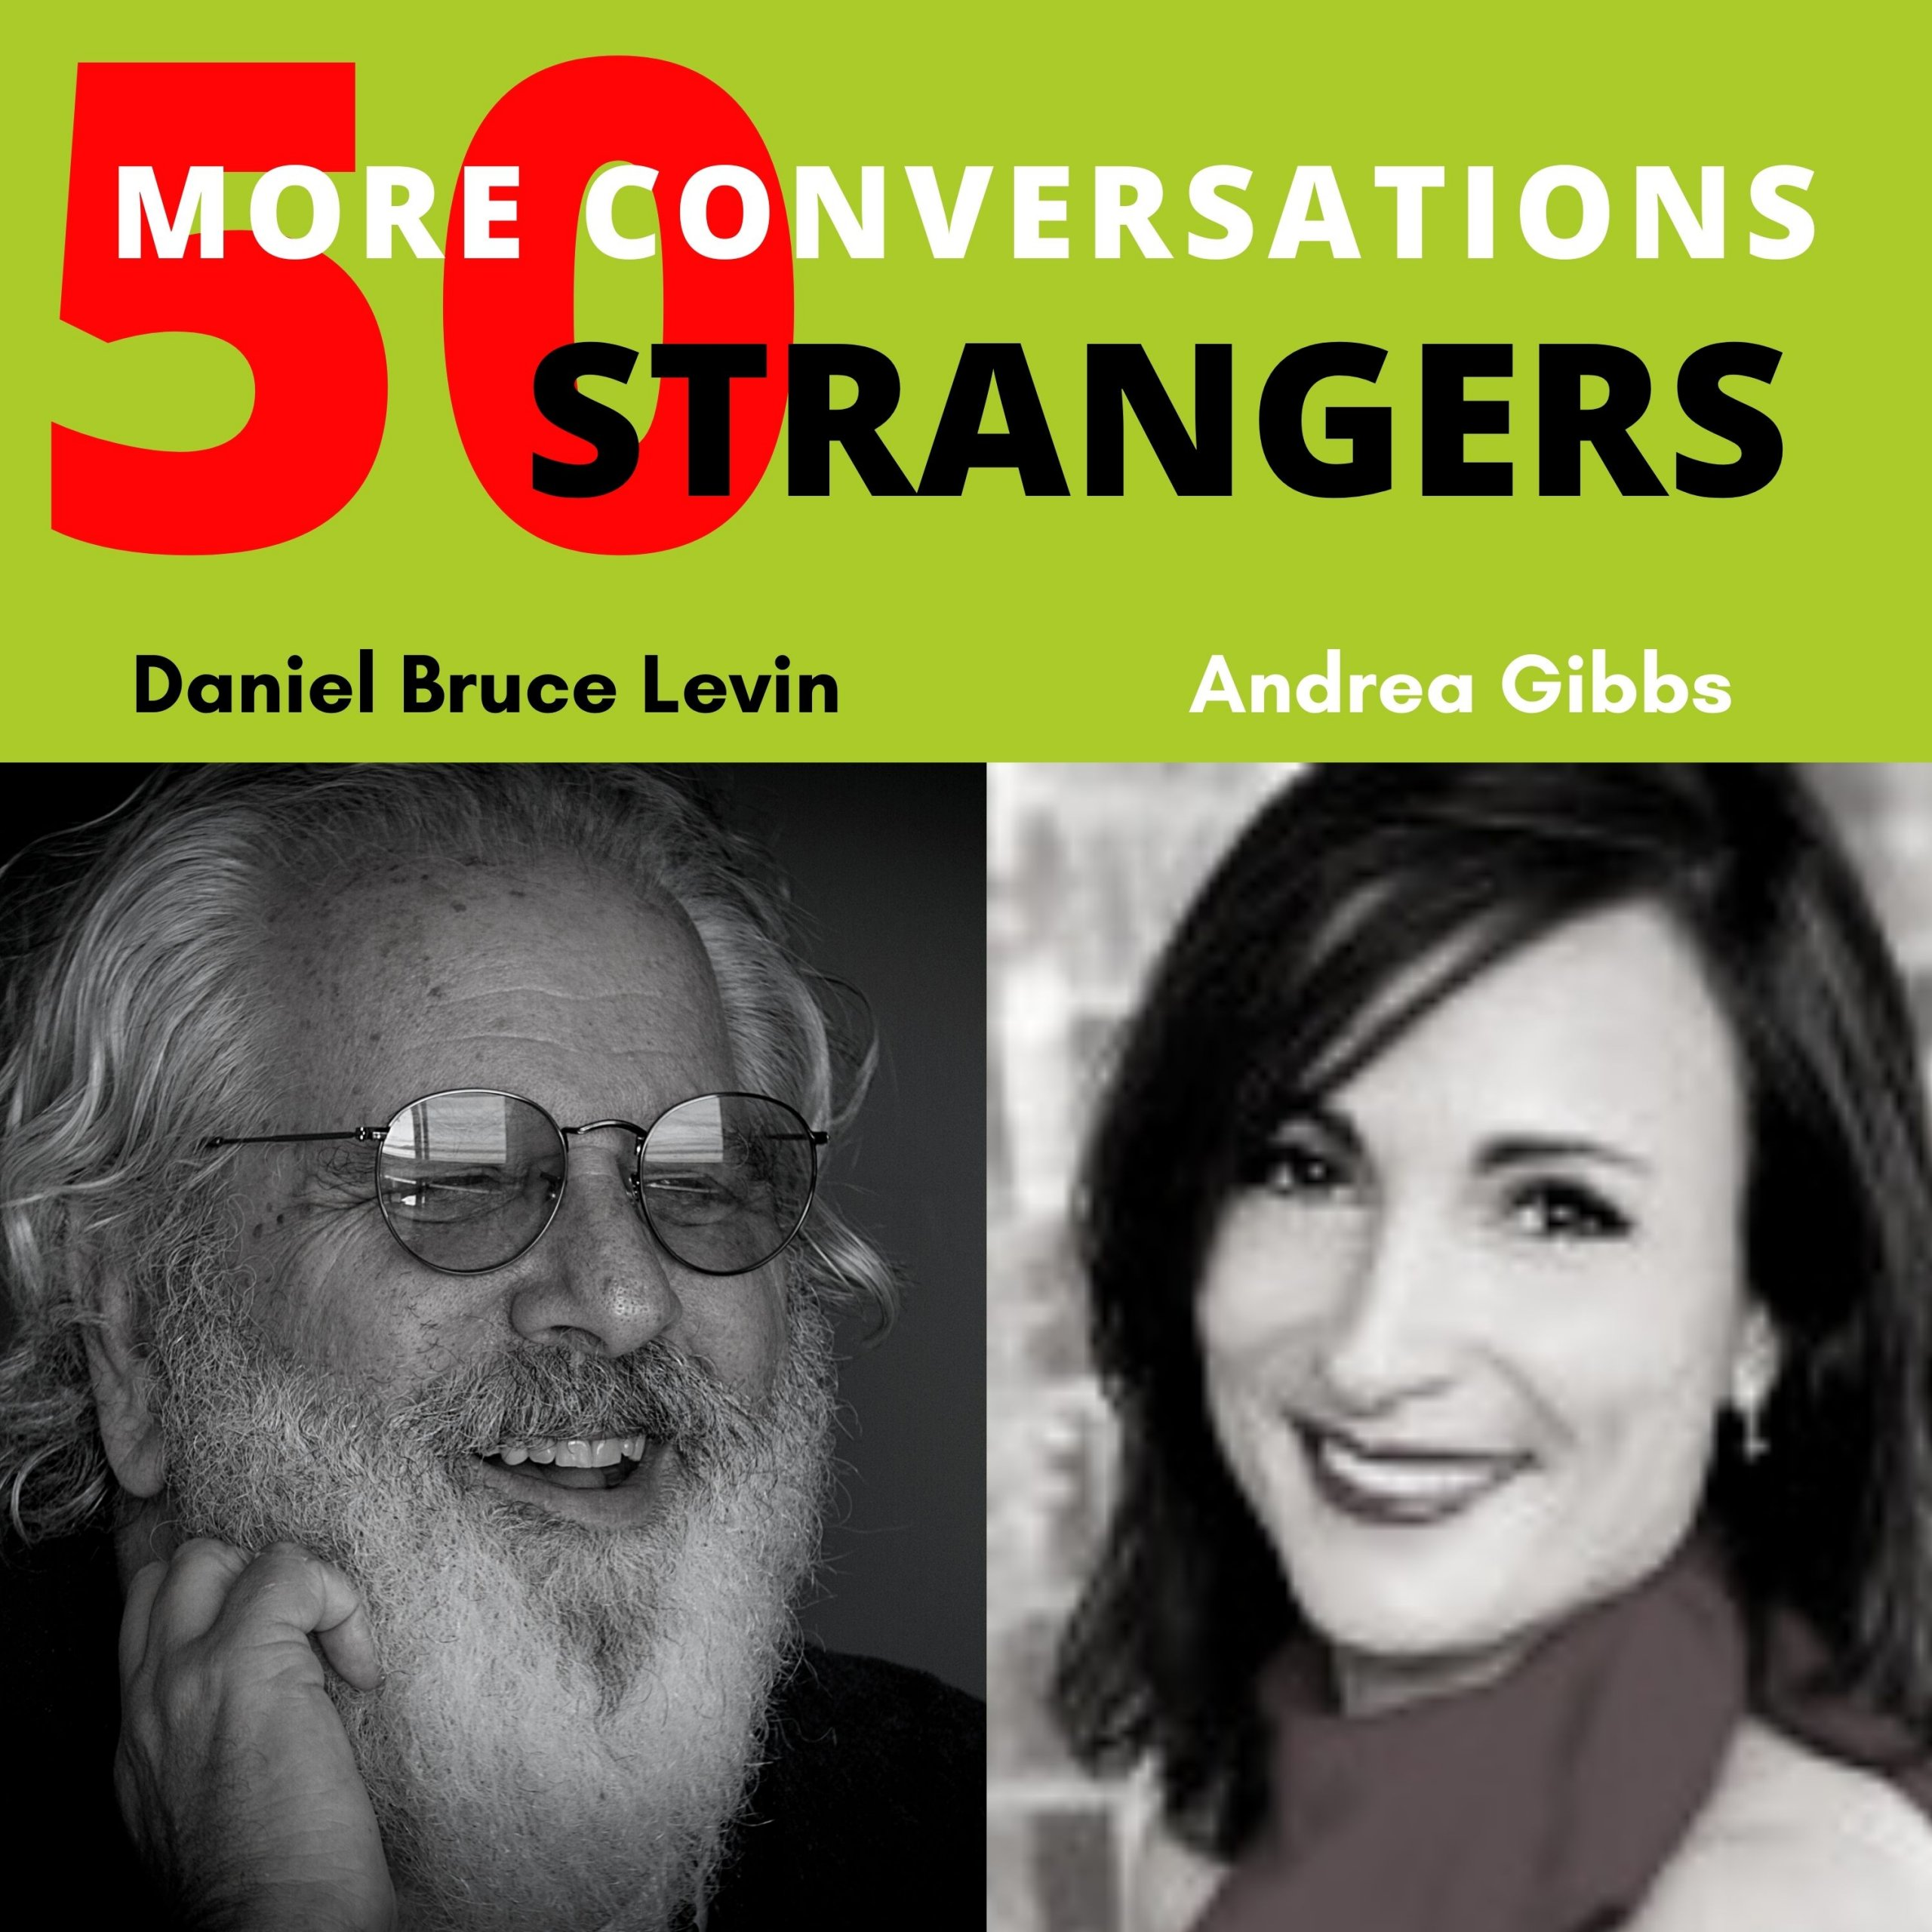 50 More Conversations with 50 More Strangers with Andrea Gibbs